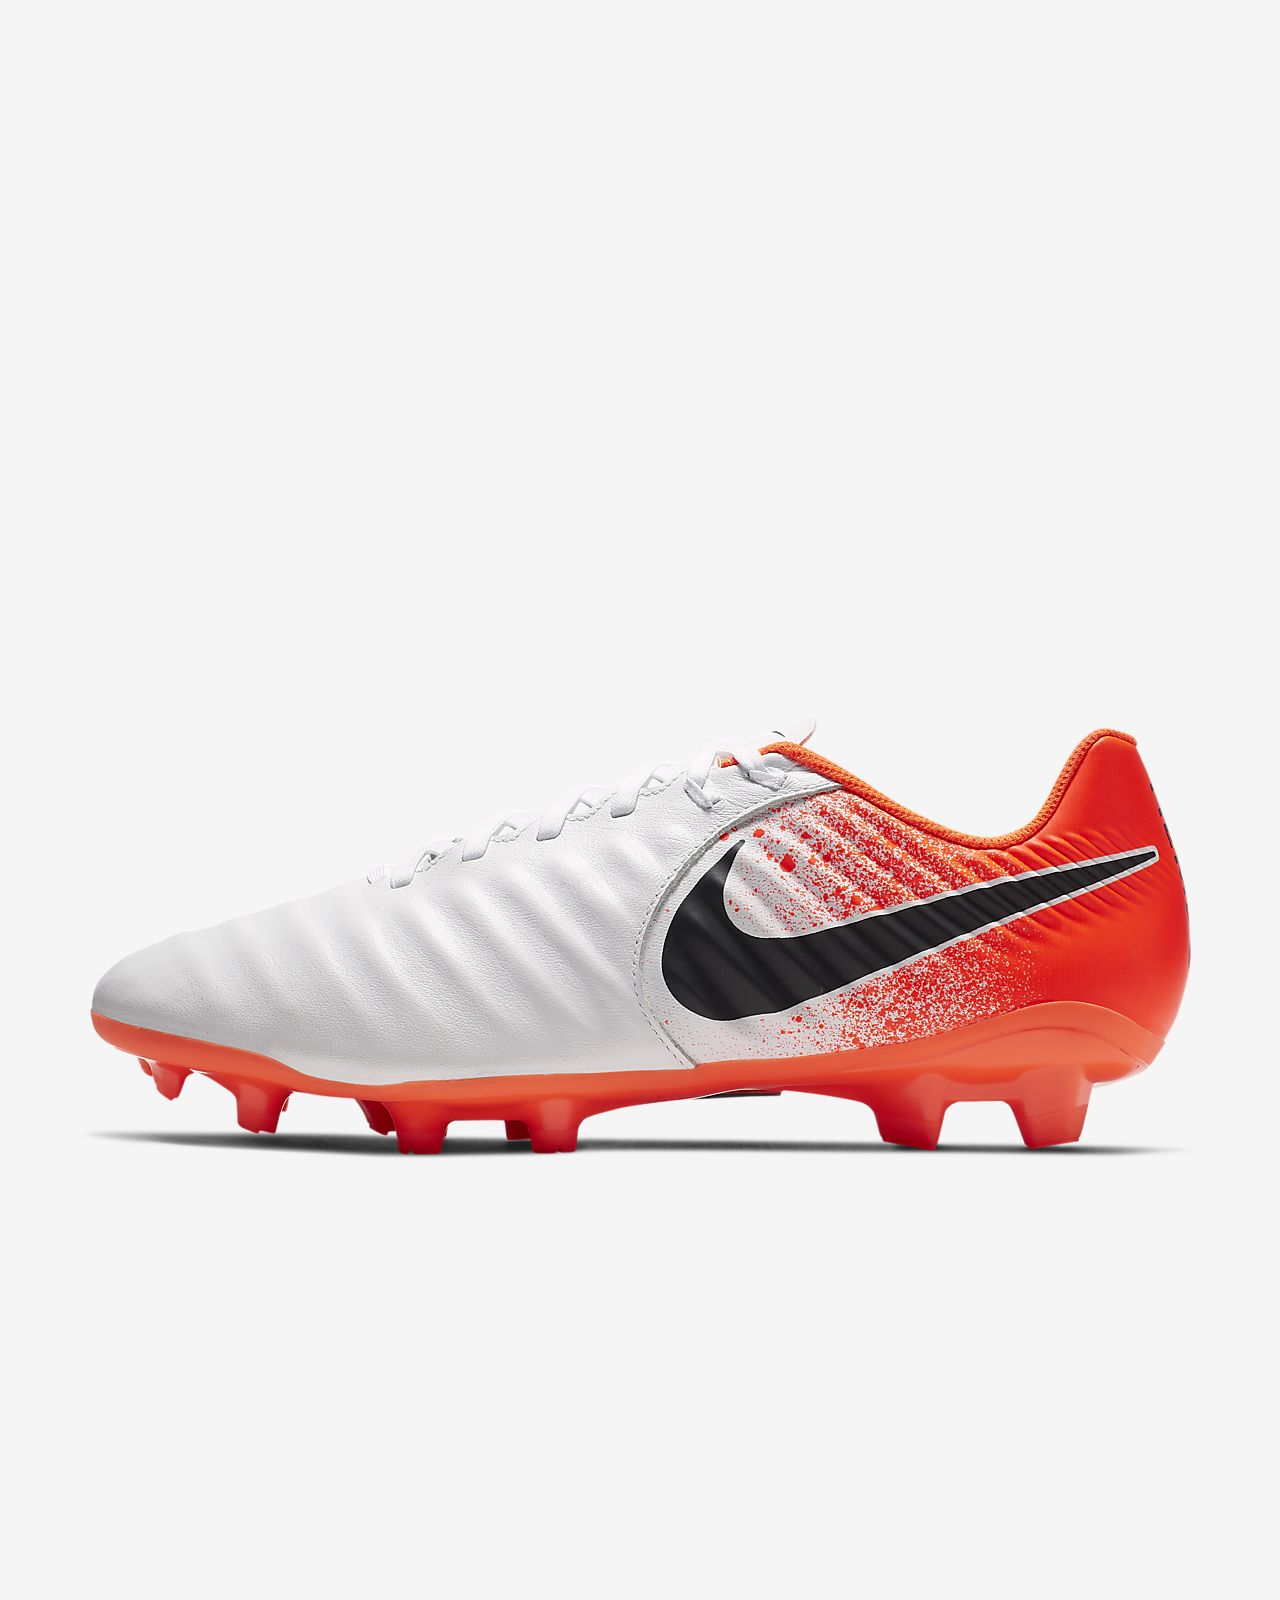 the best attitude a16de e24af ... Nike Tiempo Legend VII Academy Firm-Ground Soccer Cleat